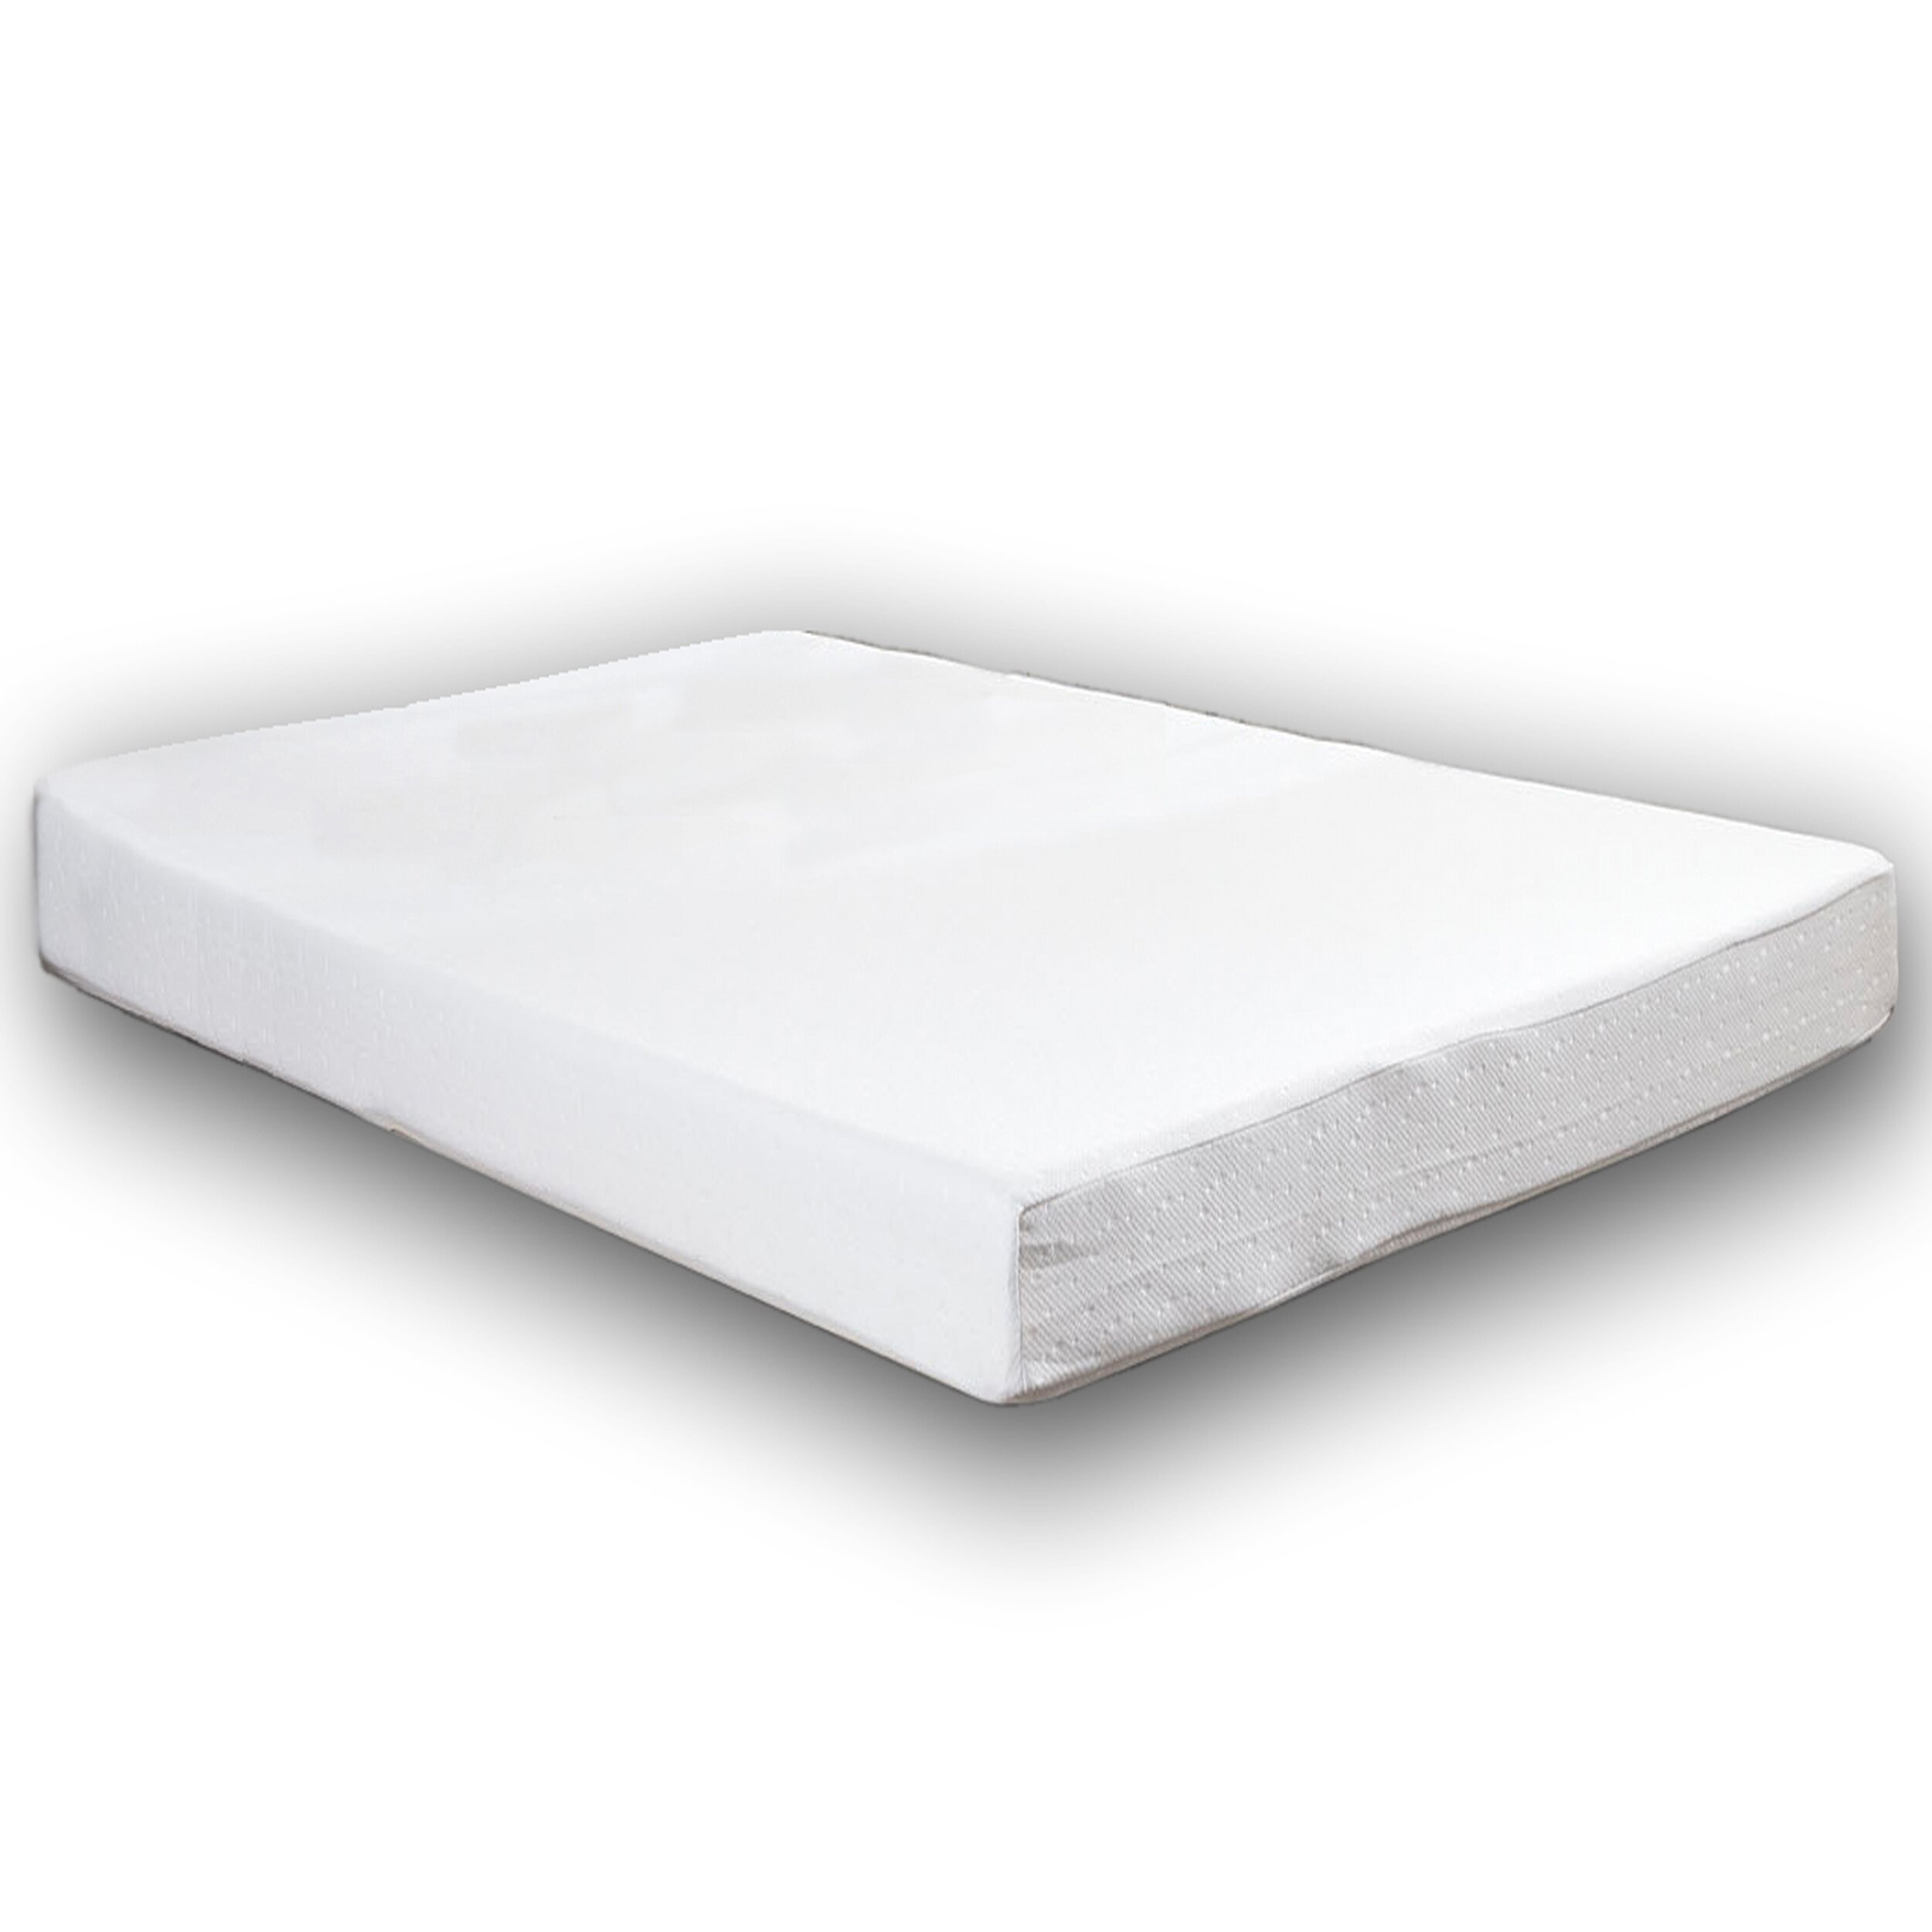 "Textrade 6"" Memory Foam Mattress & Reviews"